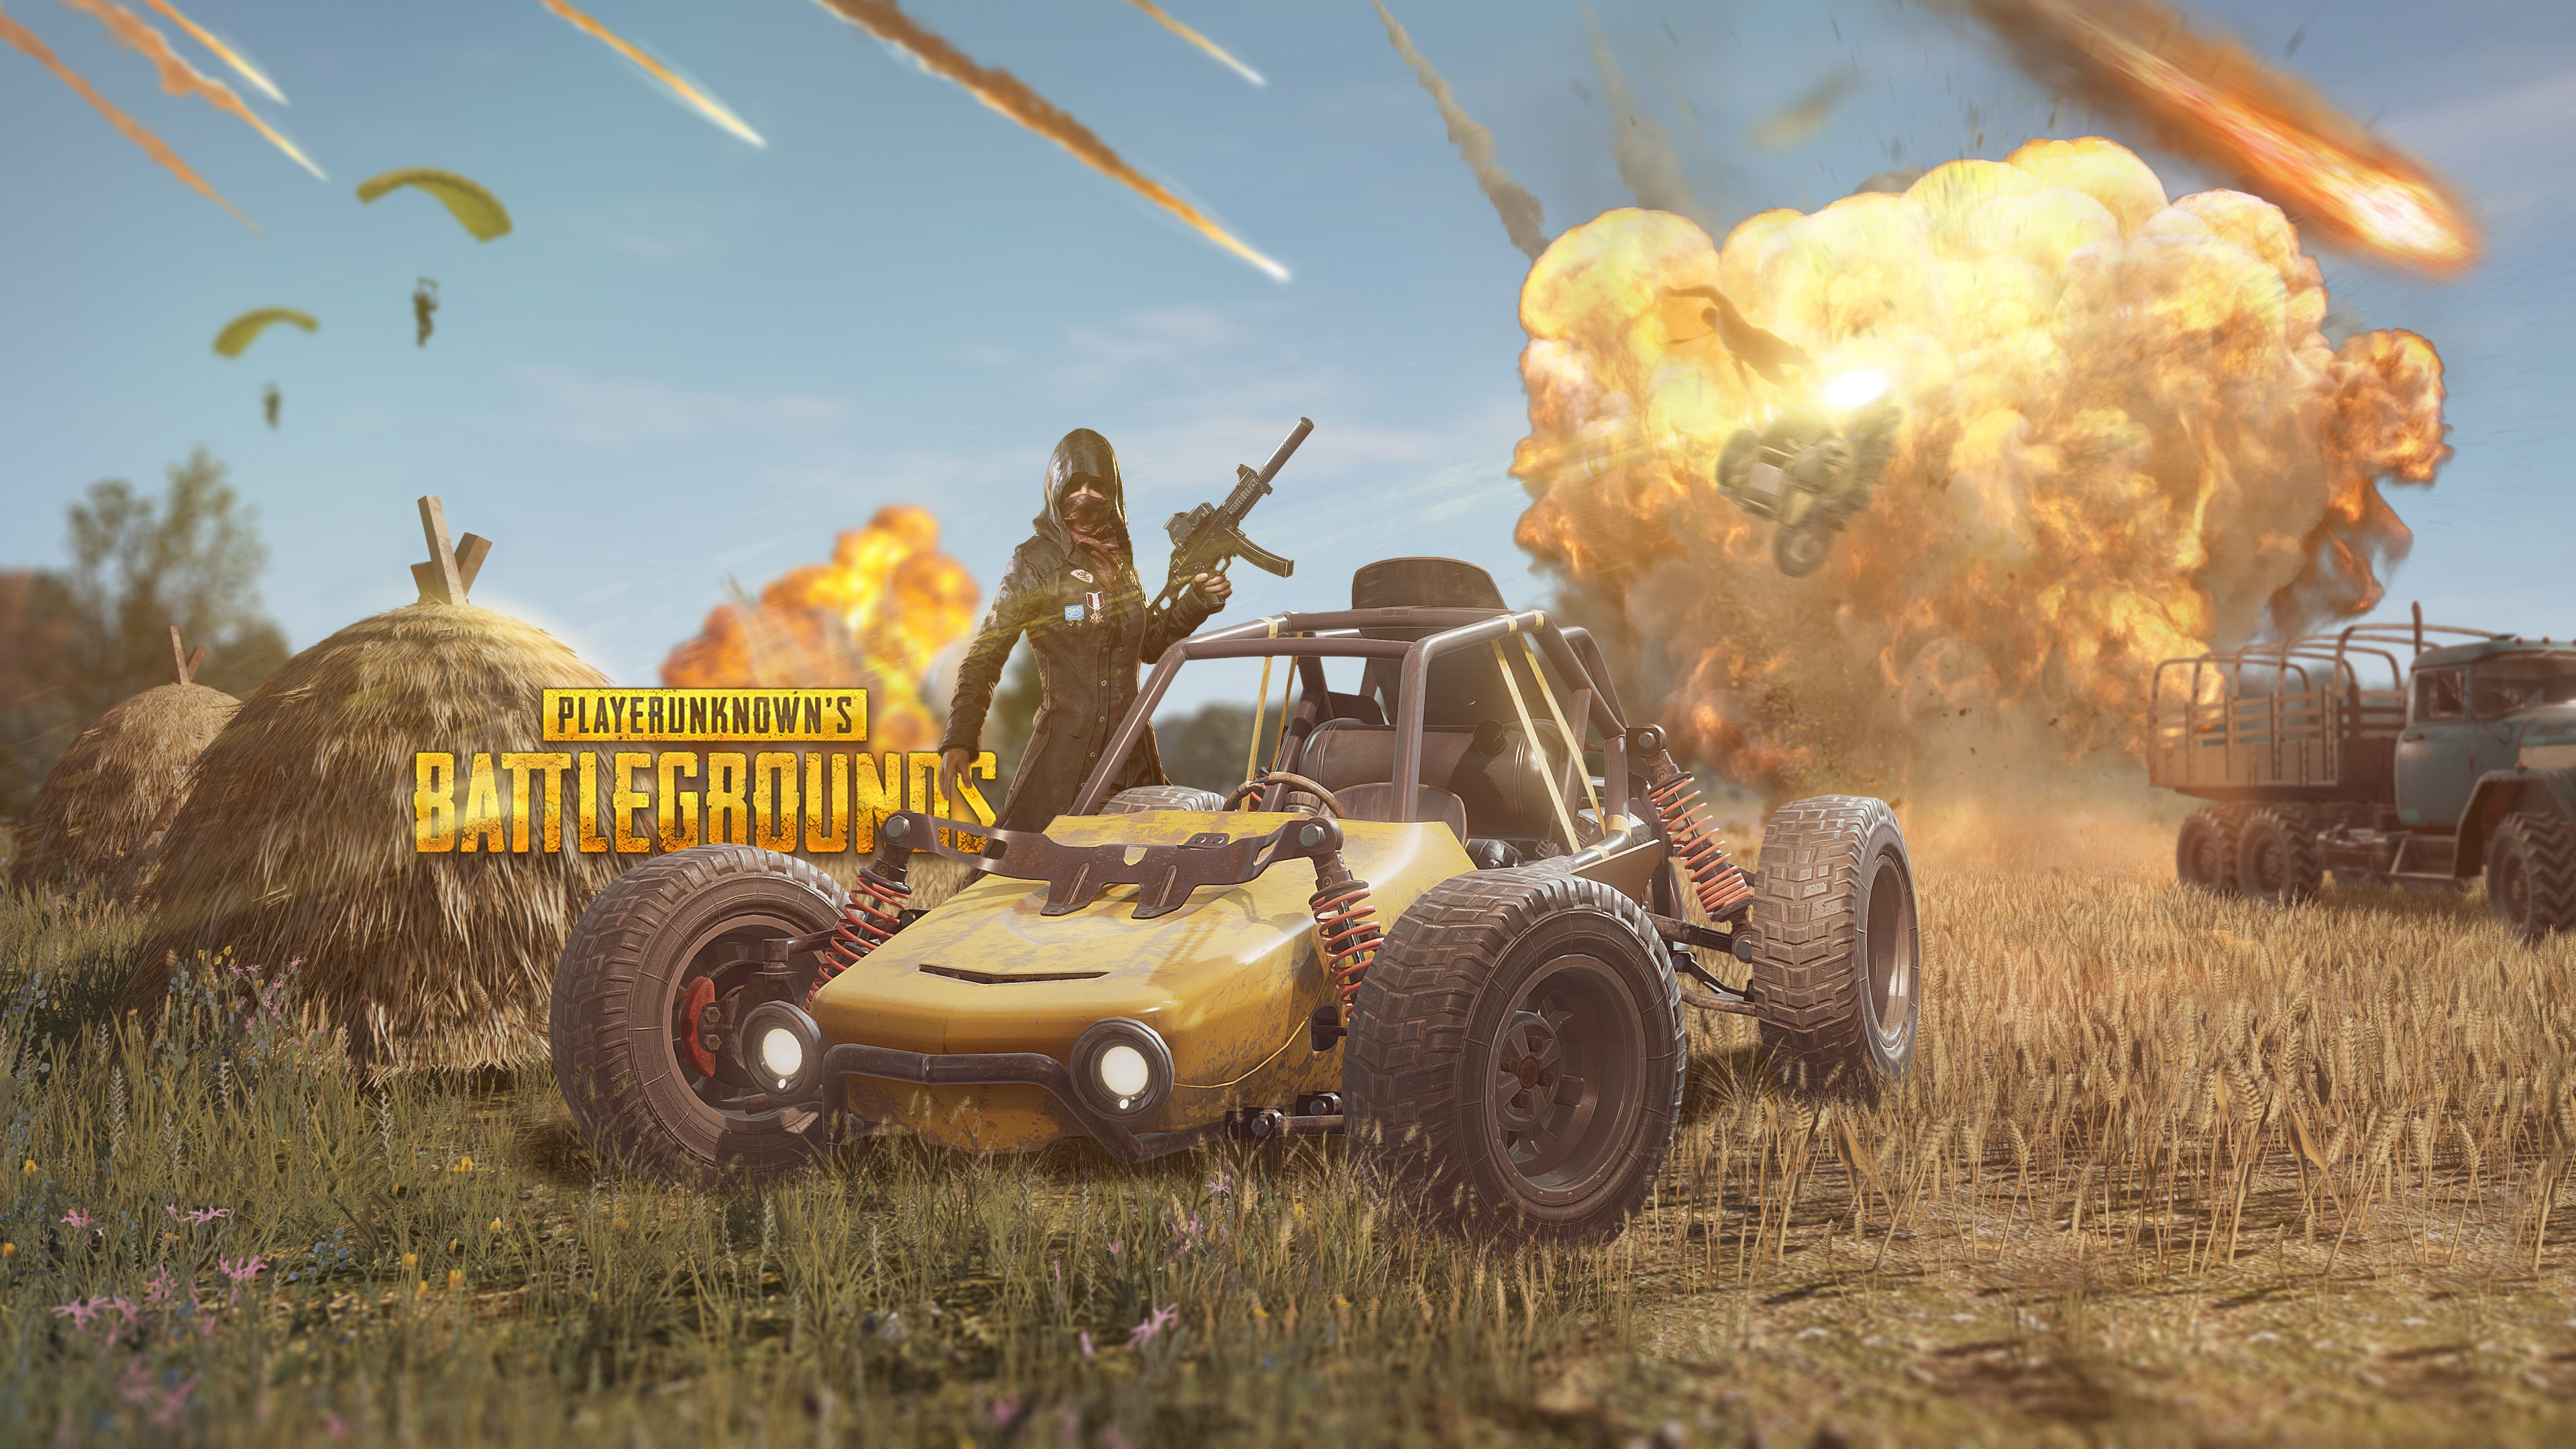 Pubg Wallpapers Widescreen On Wallpaper 1080p HD Background 3840x2160